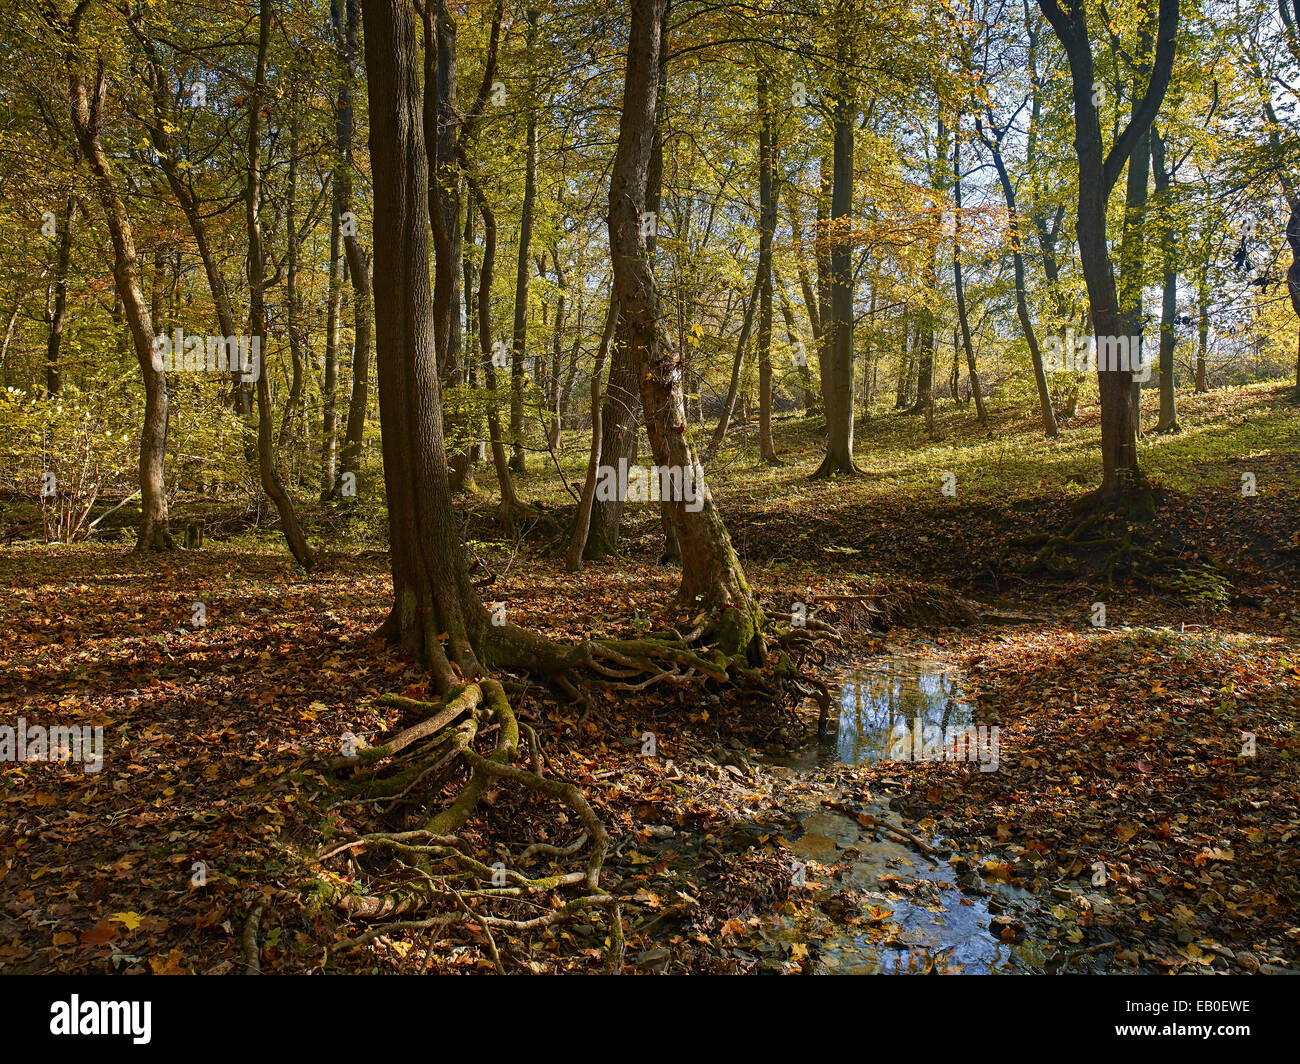 Autumn in National Park Hainich, Germany - Stock Image